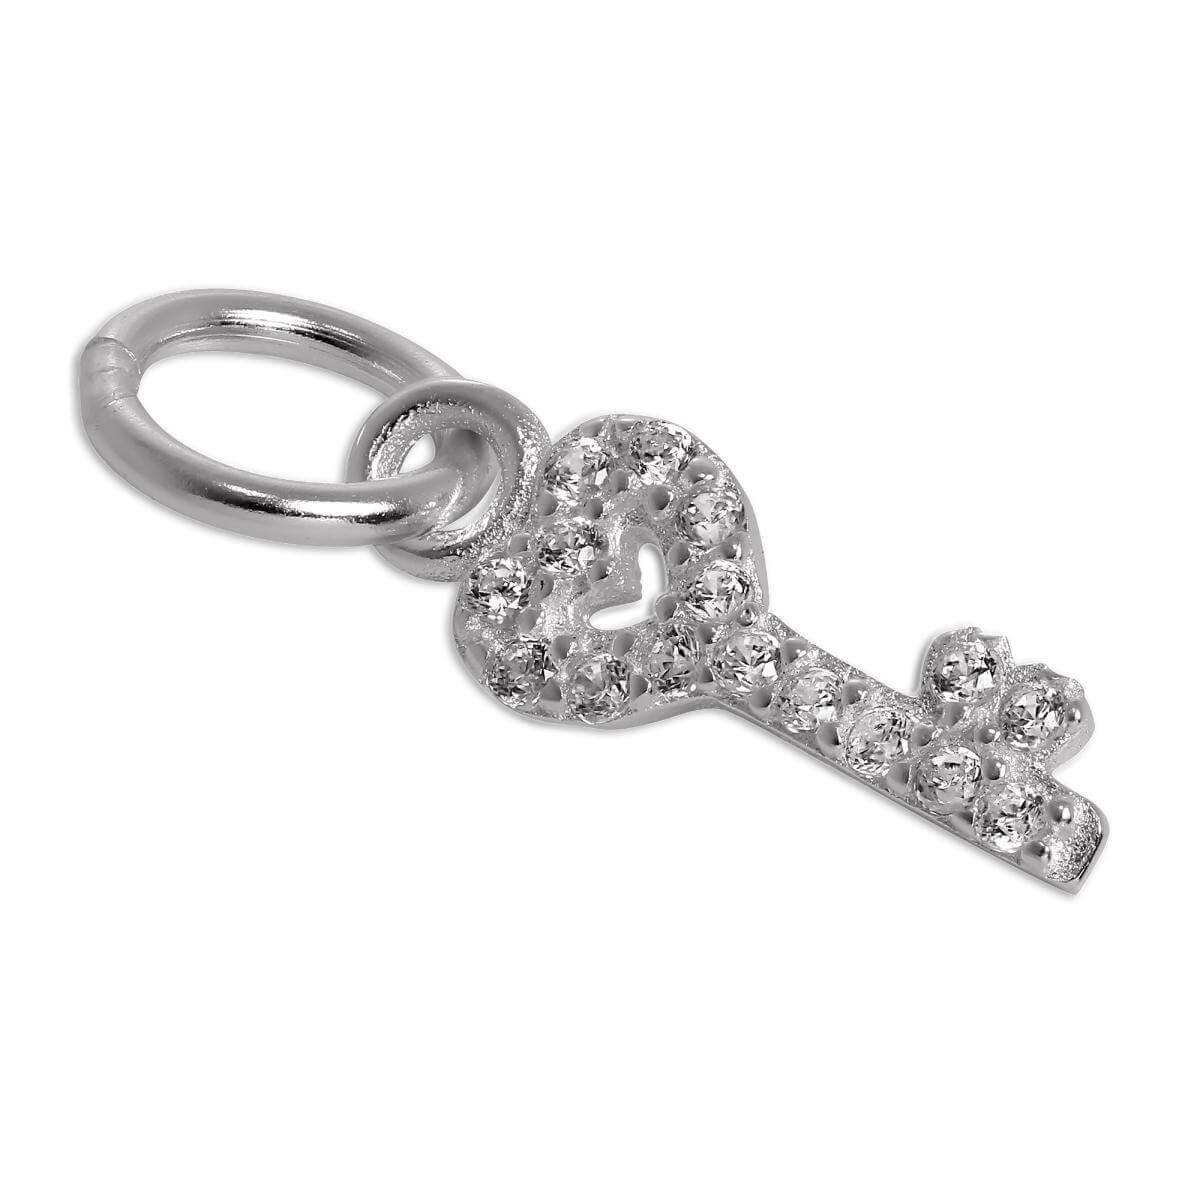 Sterling Silver & CZ Crystal Encrusted Heart Key Charm